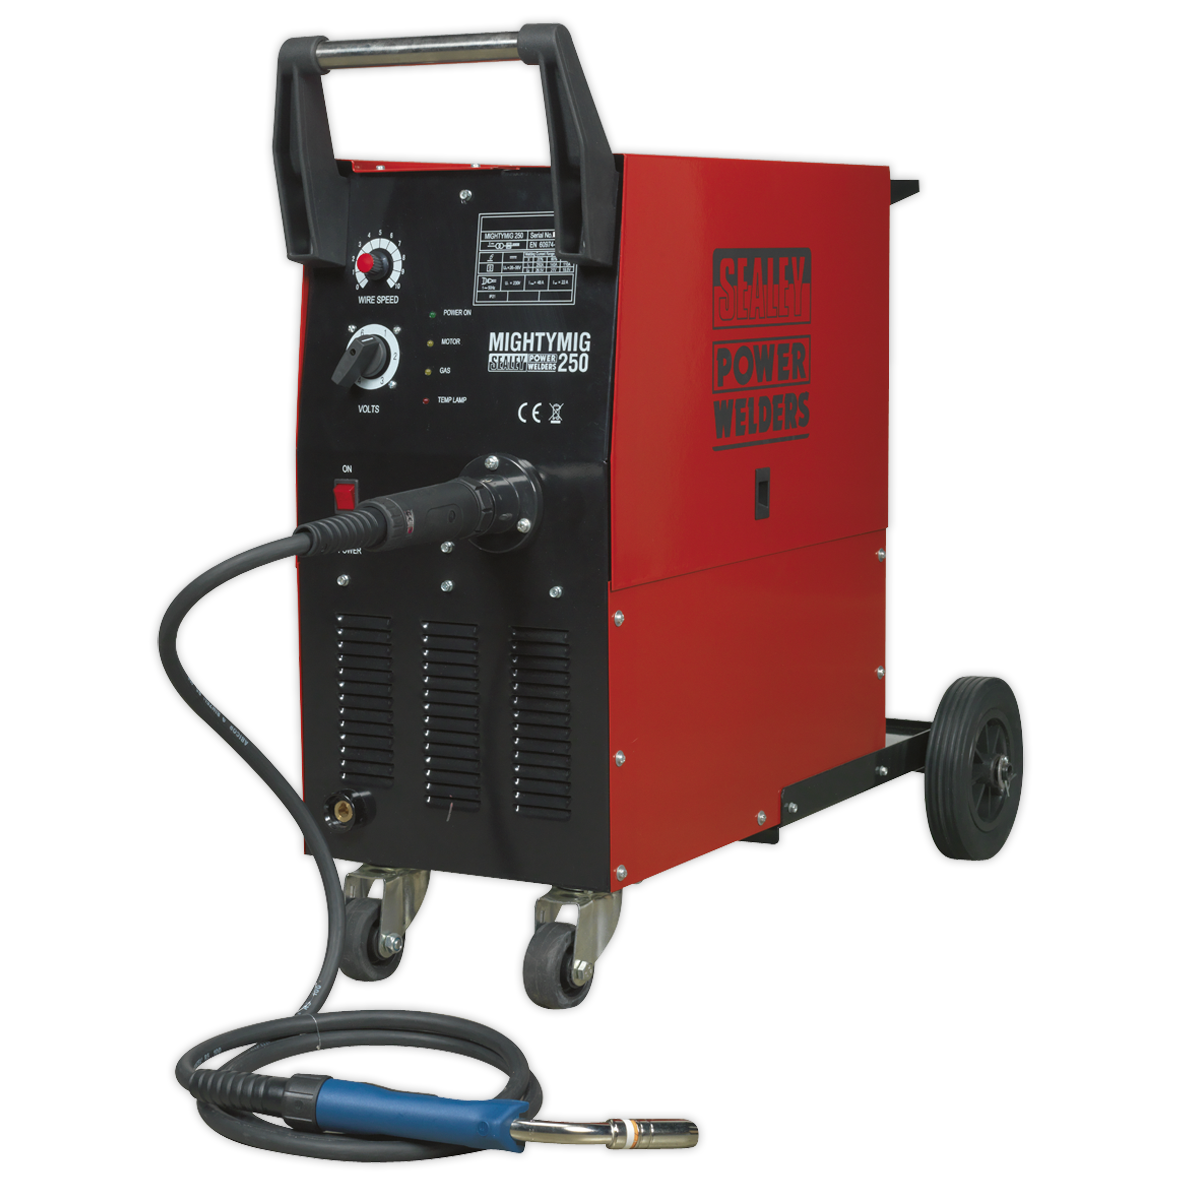 Professional Gas/No-Gas MIG Welder 250Amp with Euro Torch